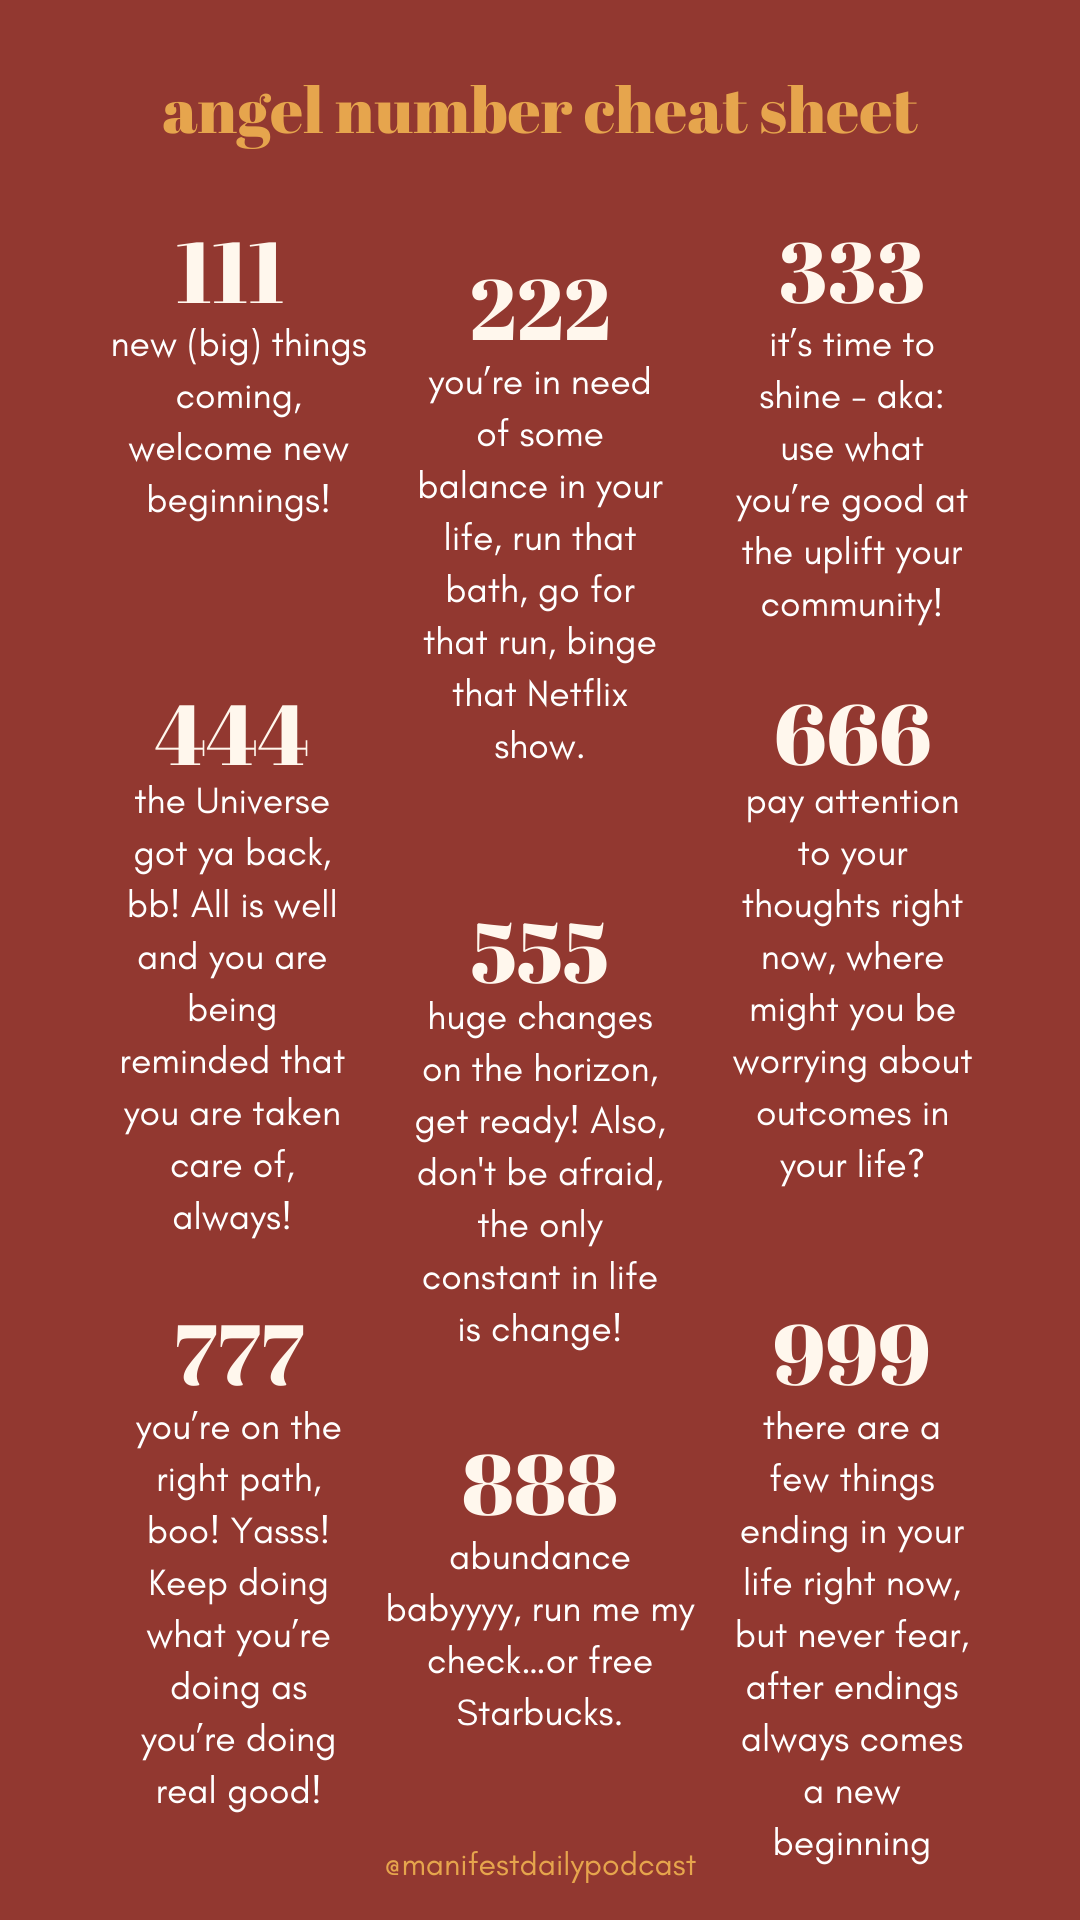 Angel Numbers Cheat Sheet - Law of Attraction